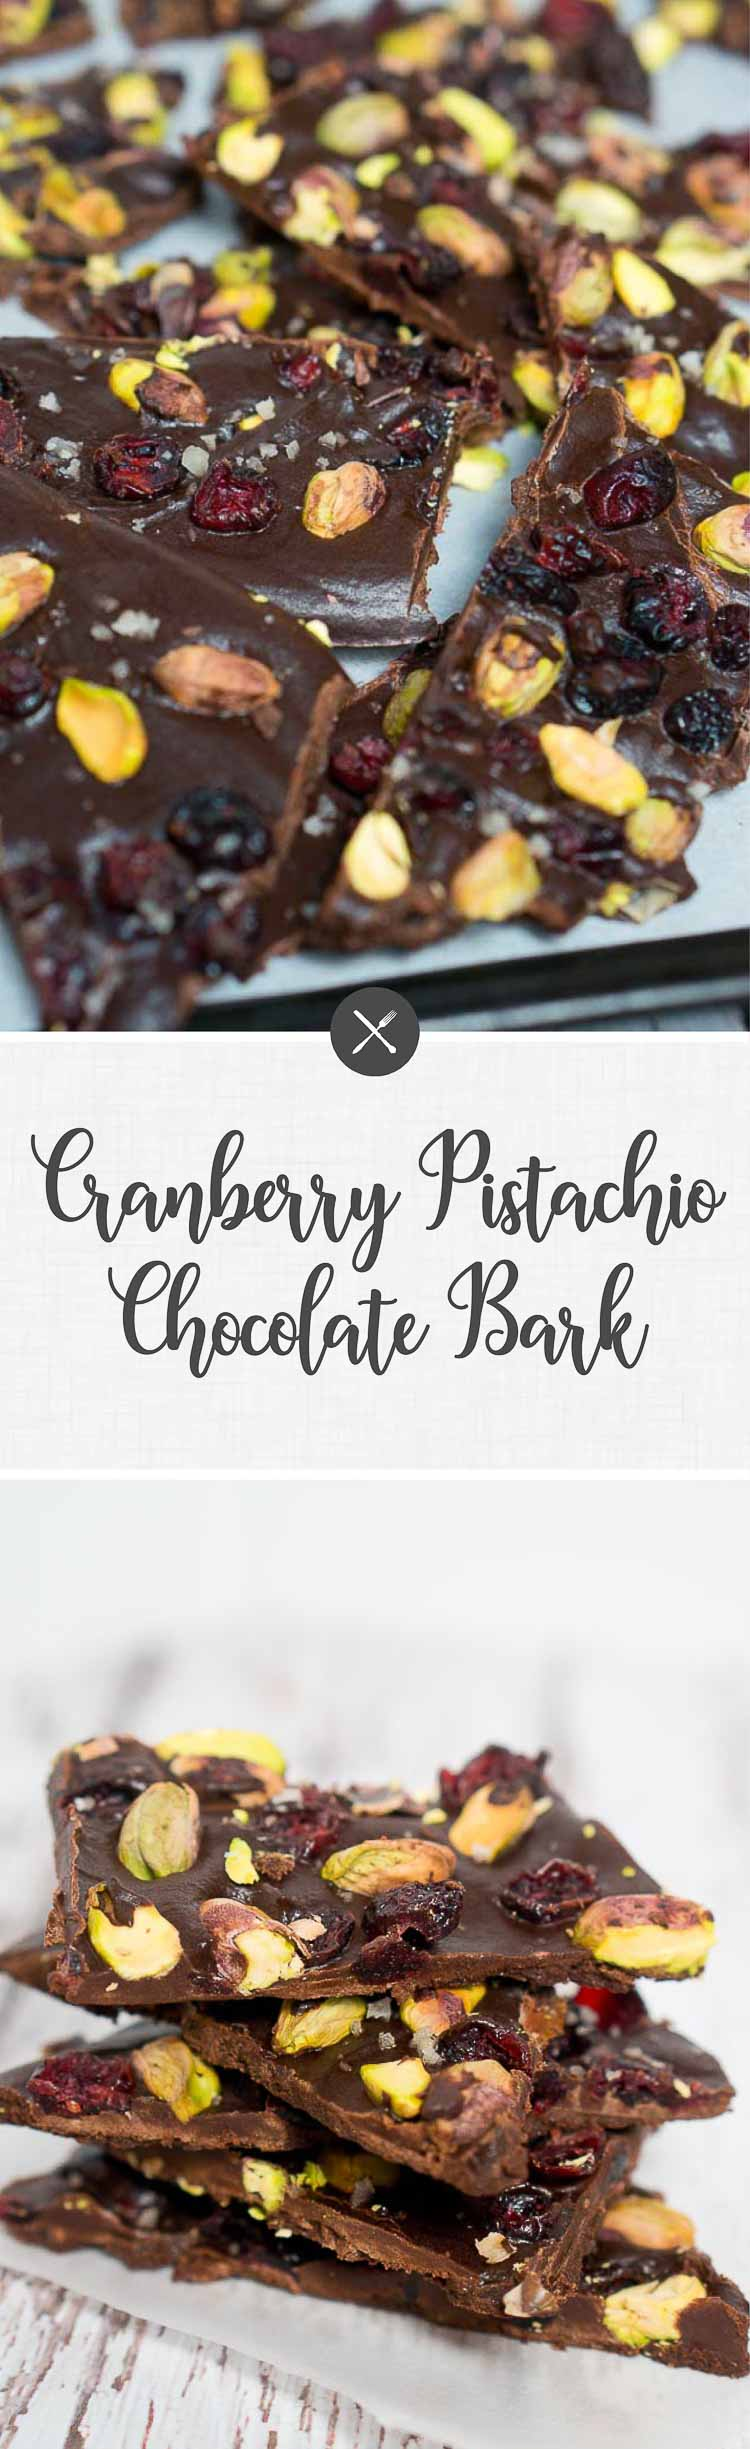 This cranberry pistachio chocolate bark is my kind of dessert because it's made with healthy ingredients and it's easy to throw together. #NewYears #holiday #ediblegift #chocolate #dessert #paleo #glutenfree #lowcarb #whole30